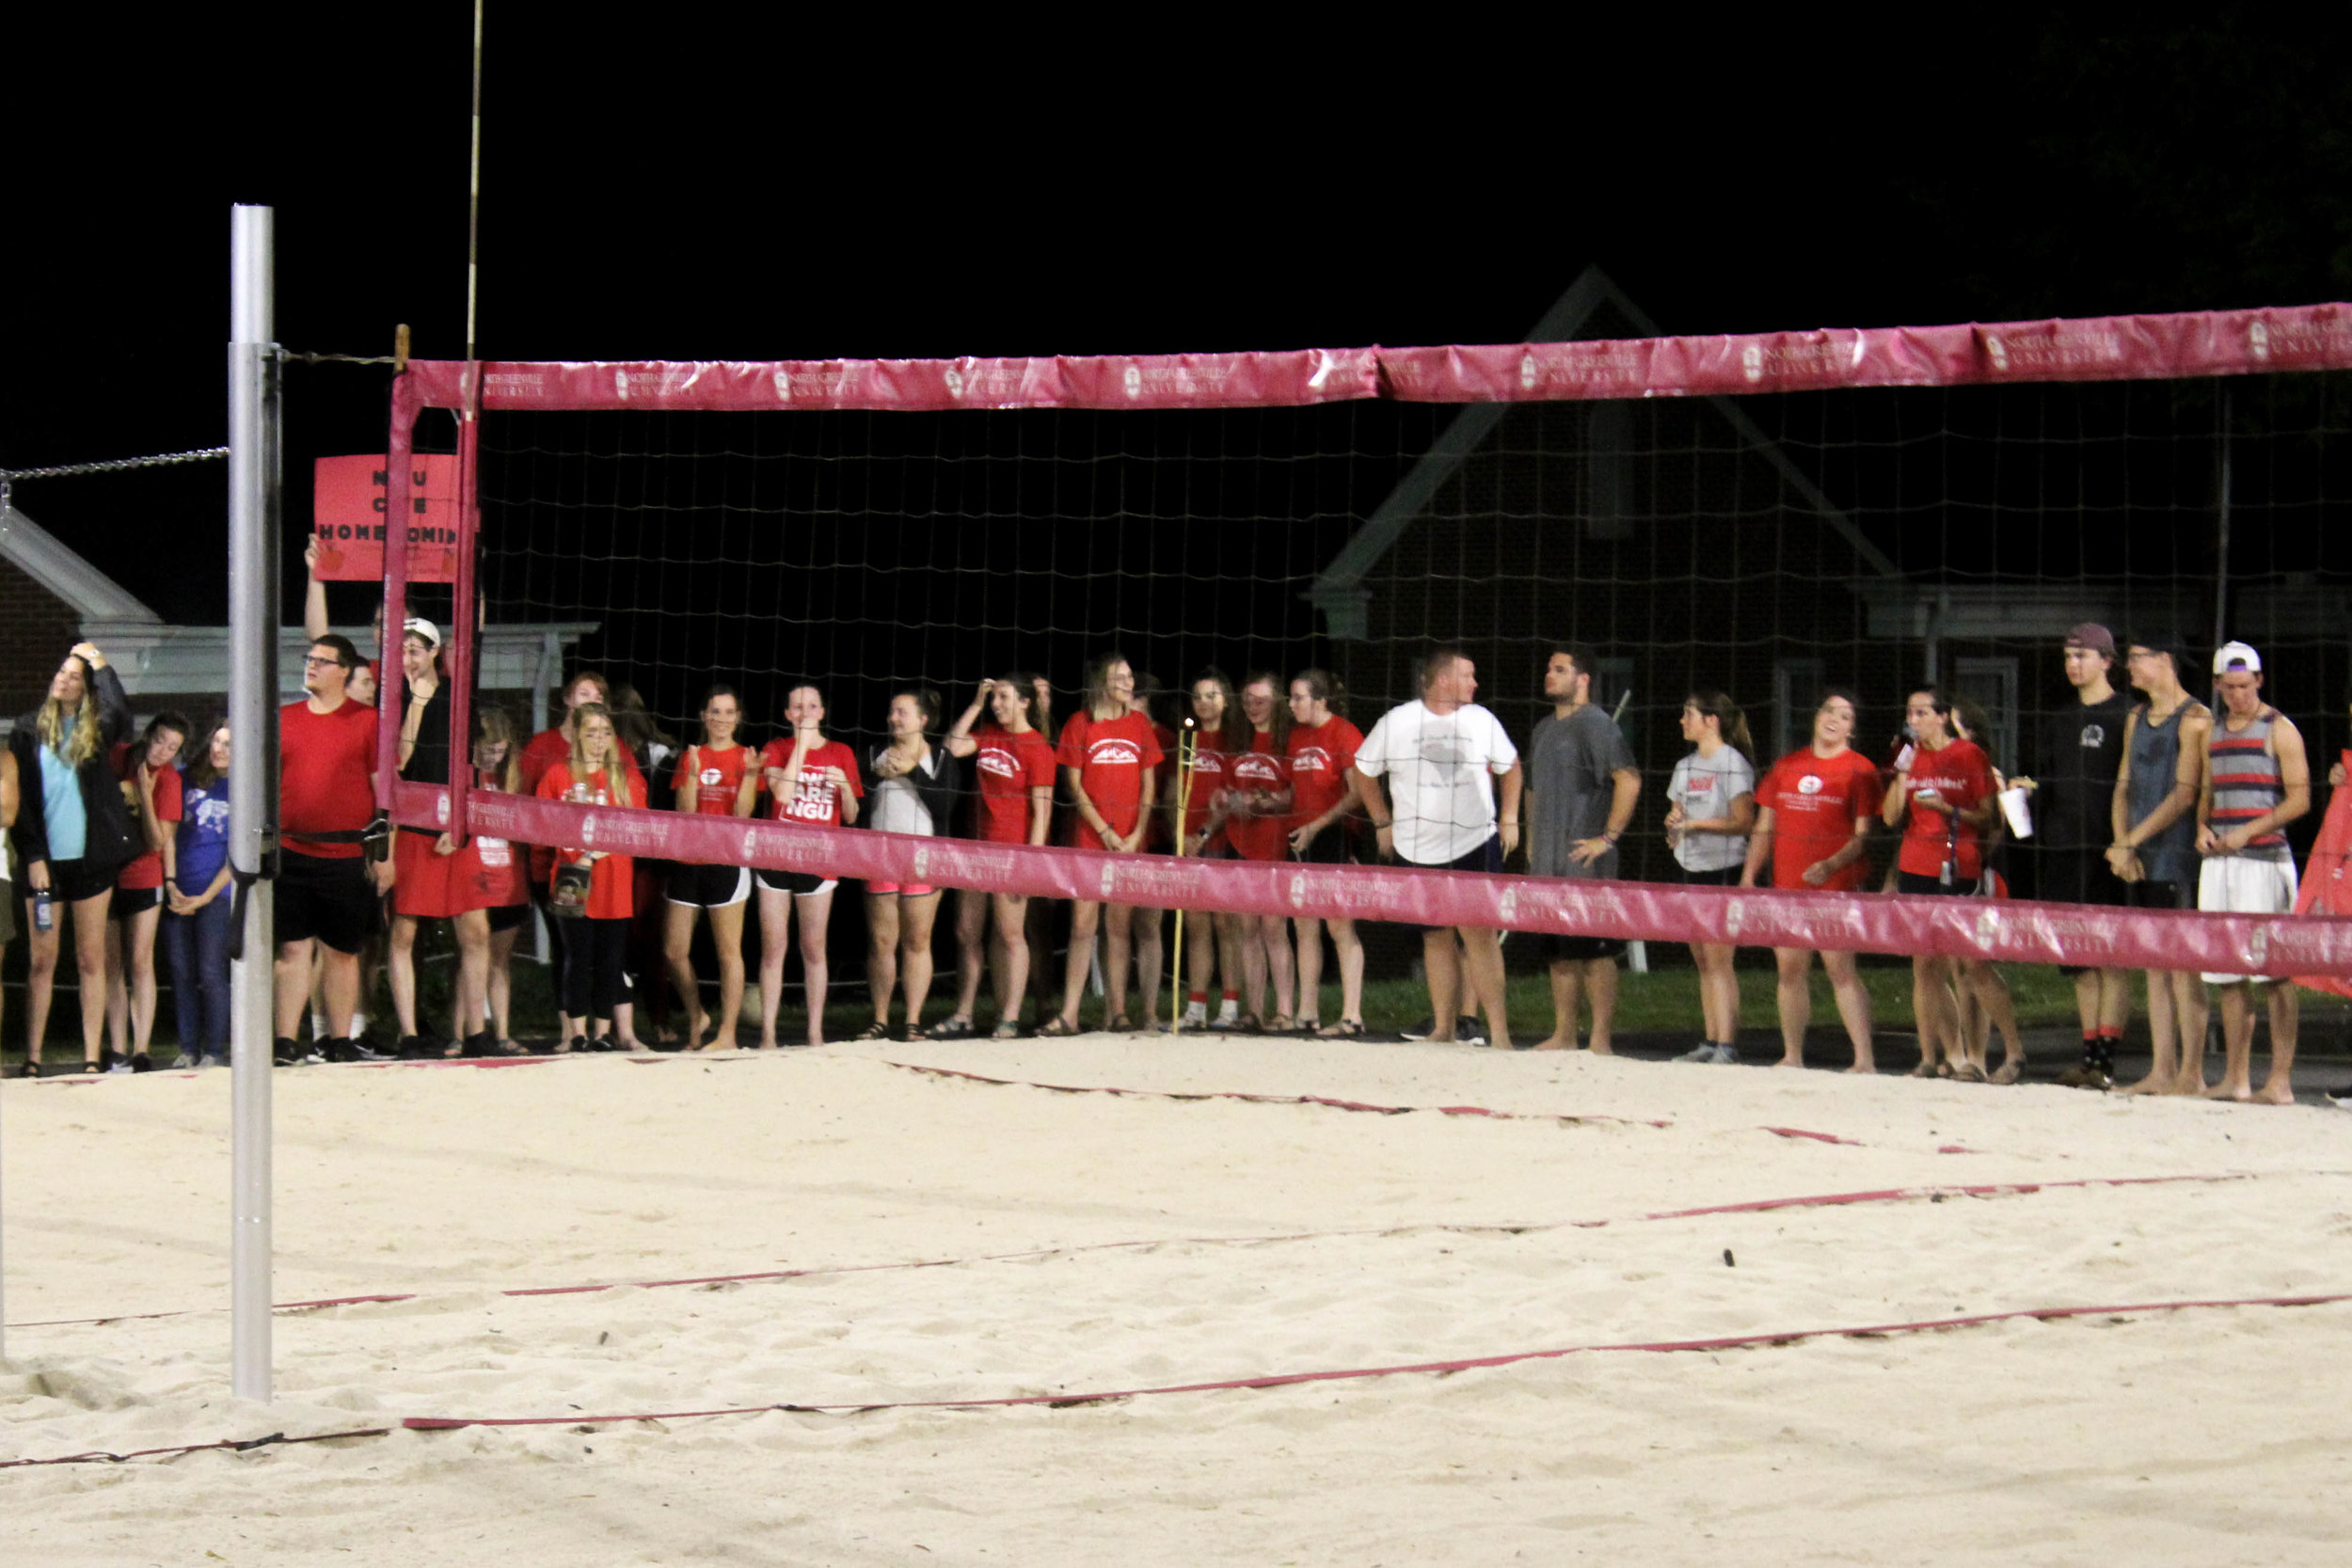 Members of the College of Education show their support for their team by lining up and cheering.